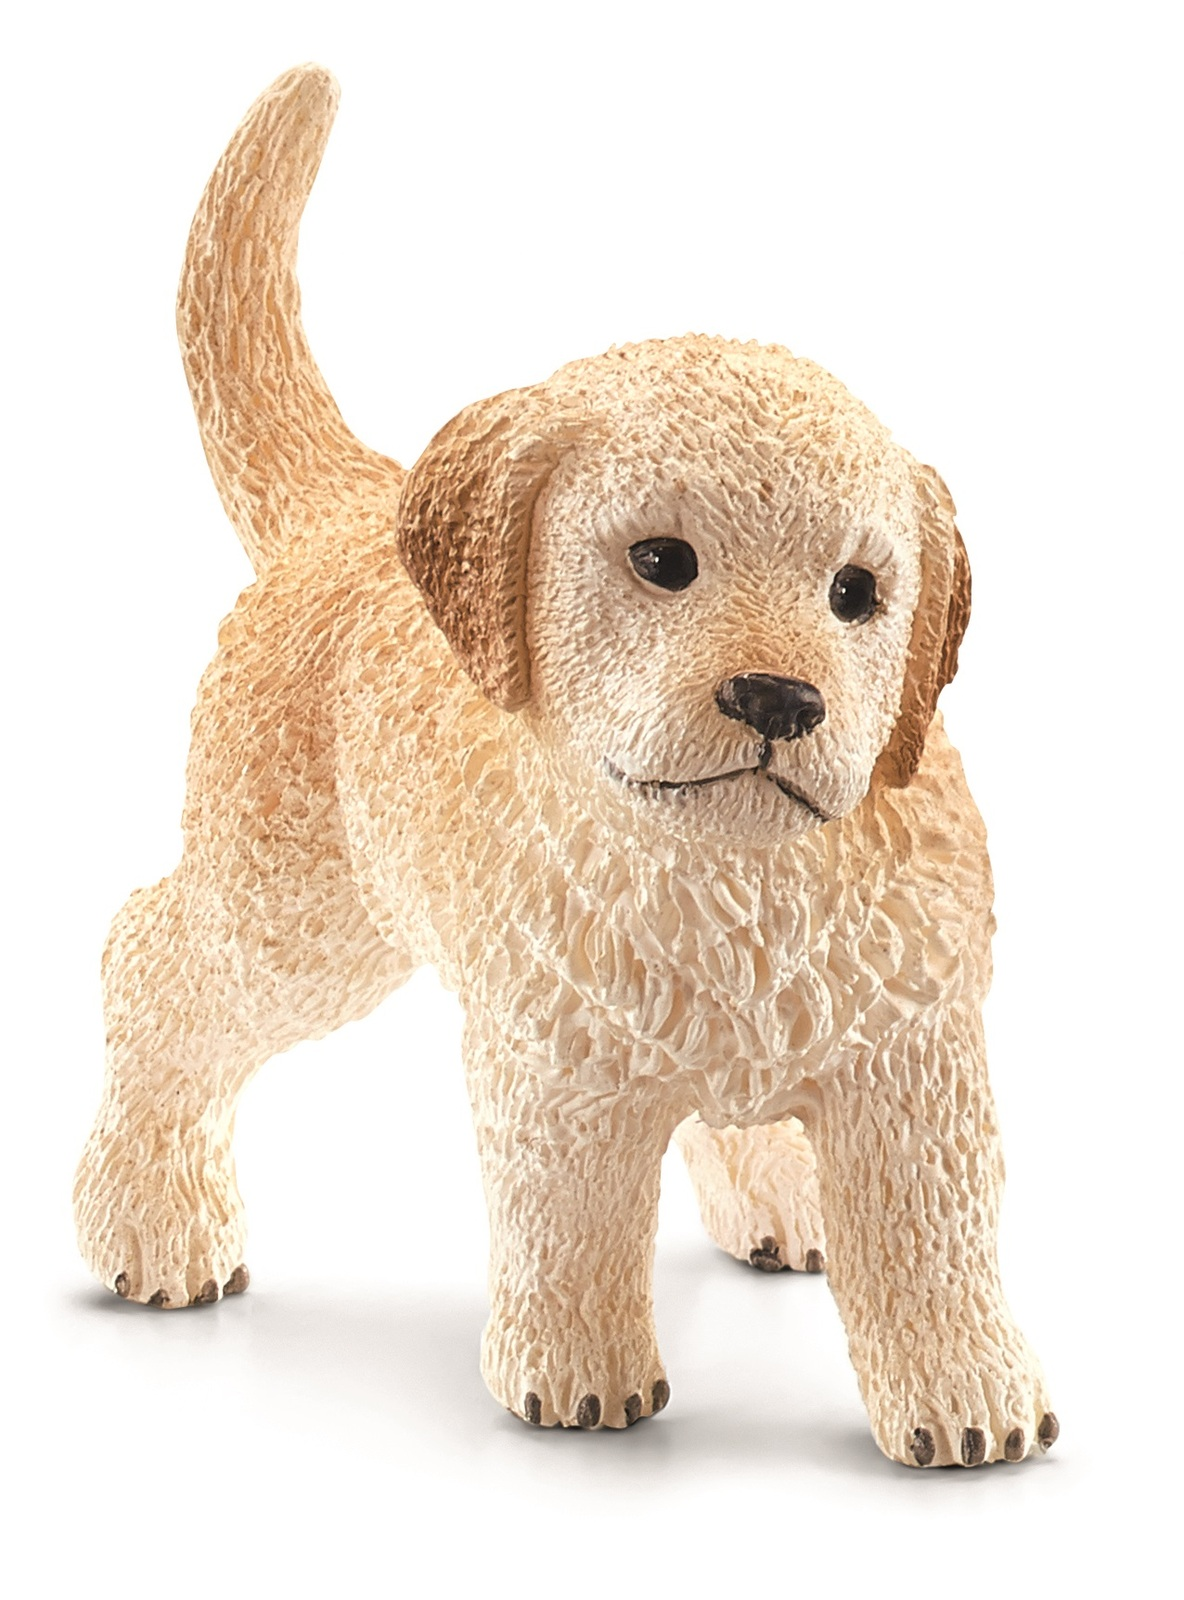 Schleich: Golden Retriever Puppy image